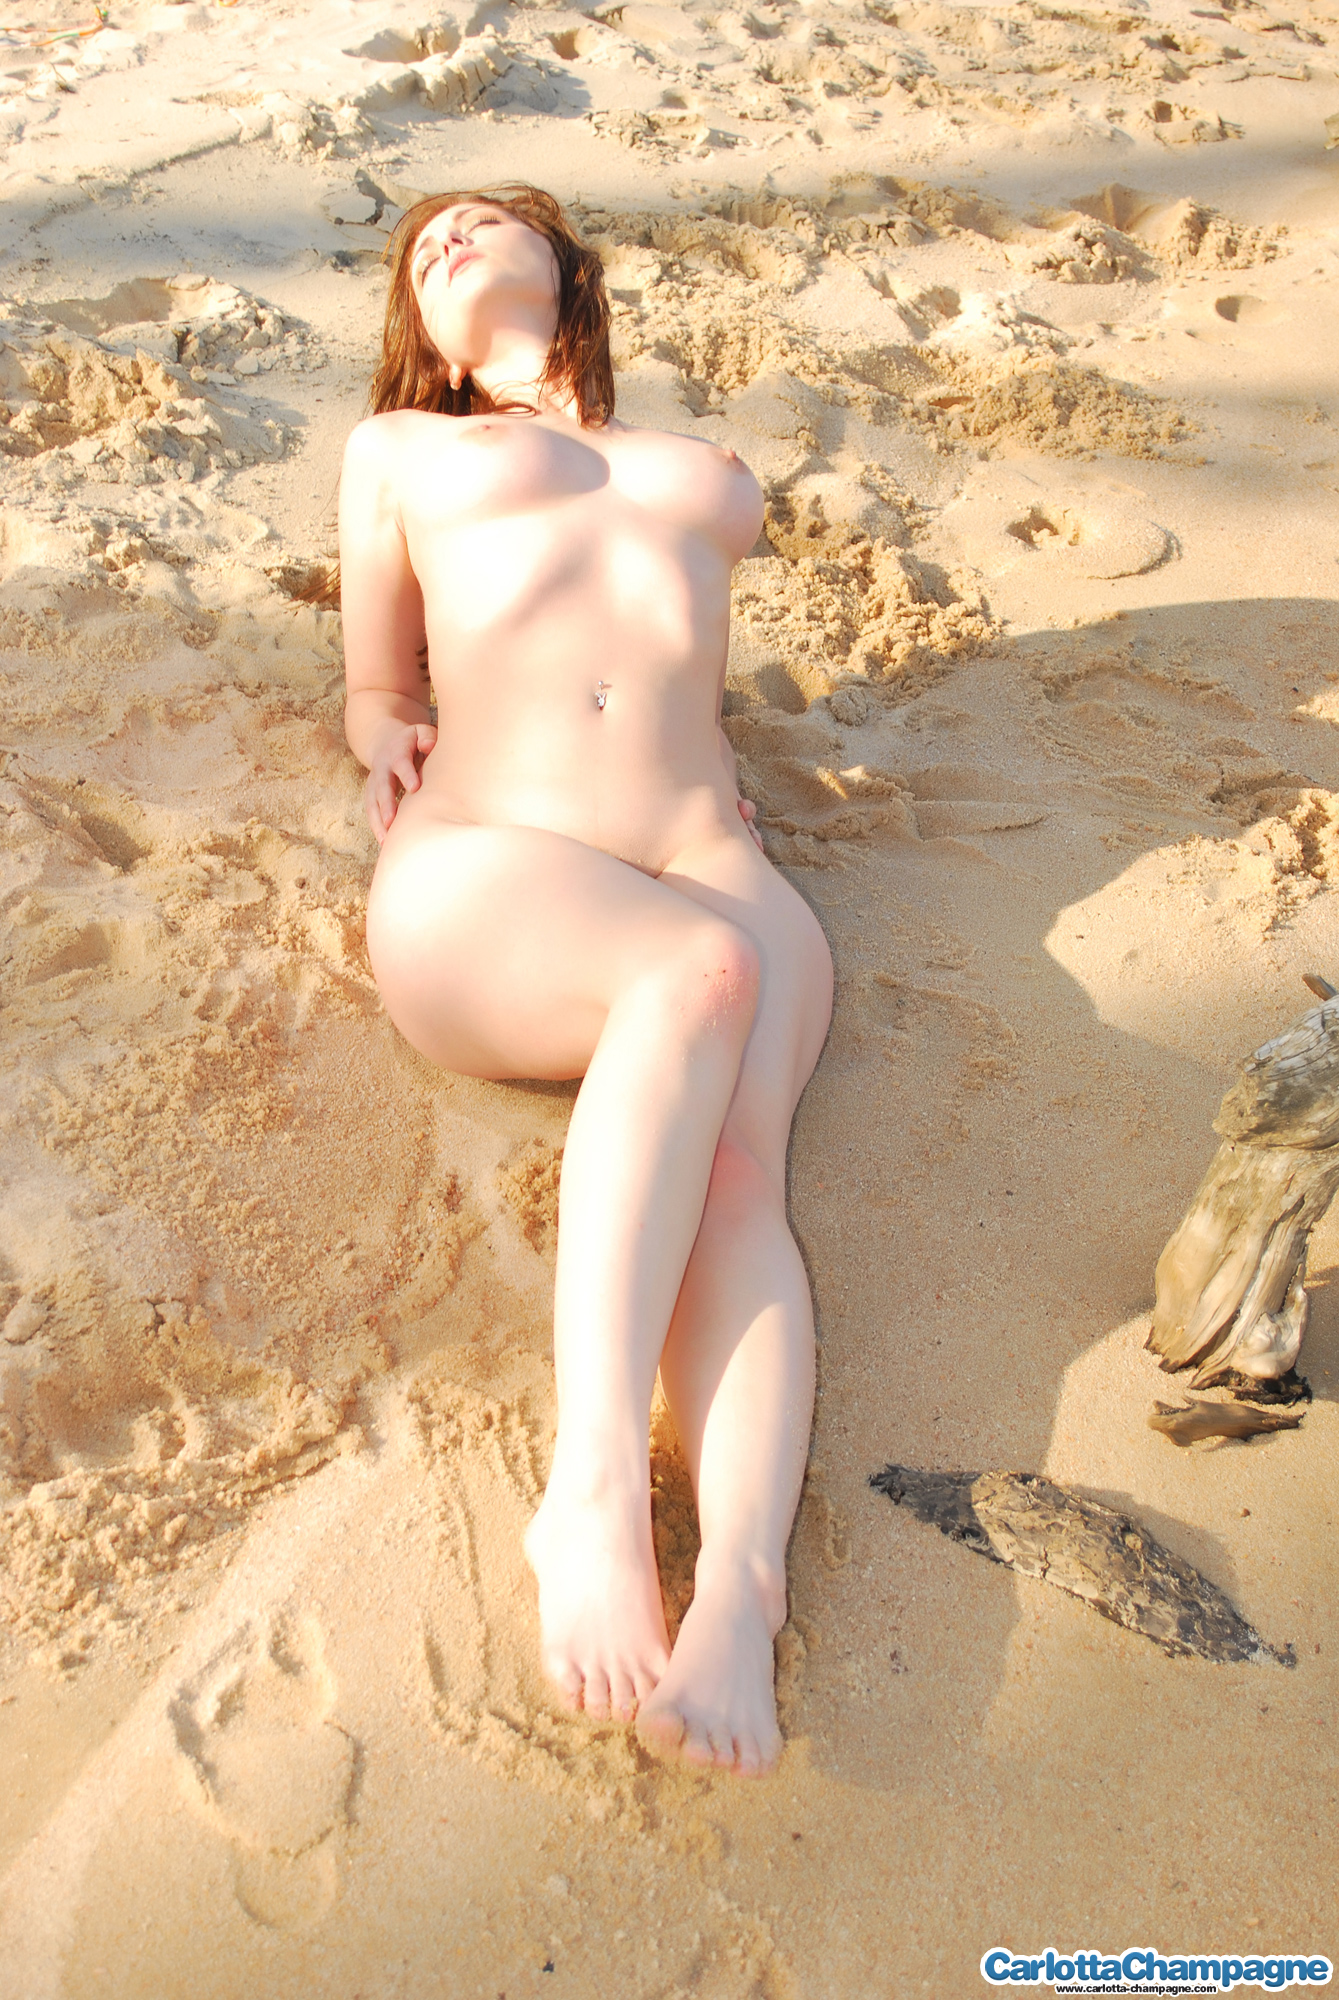 Carlotta Champagne nude beach party 2 - 貼圖 - 歐美寫真 -